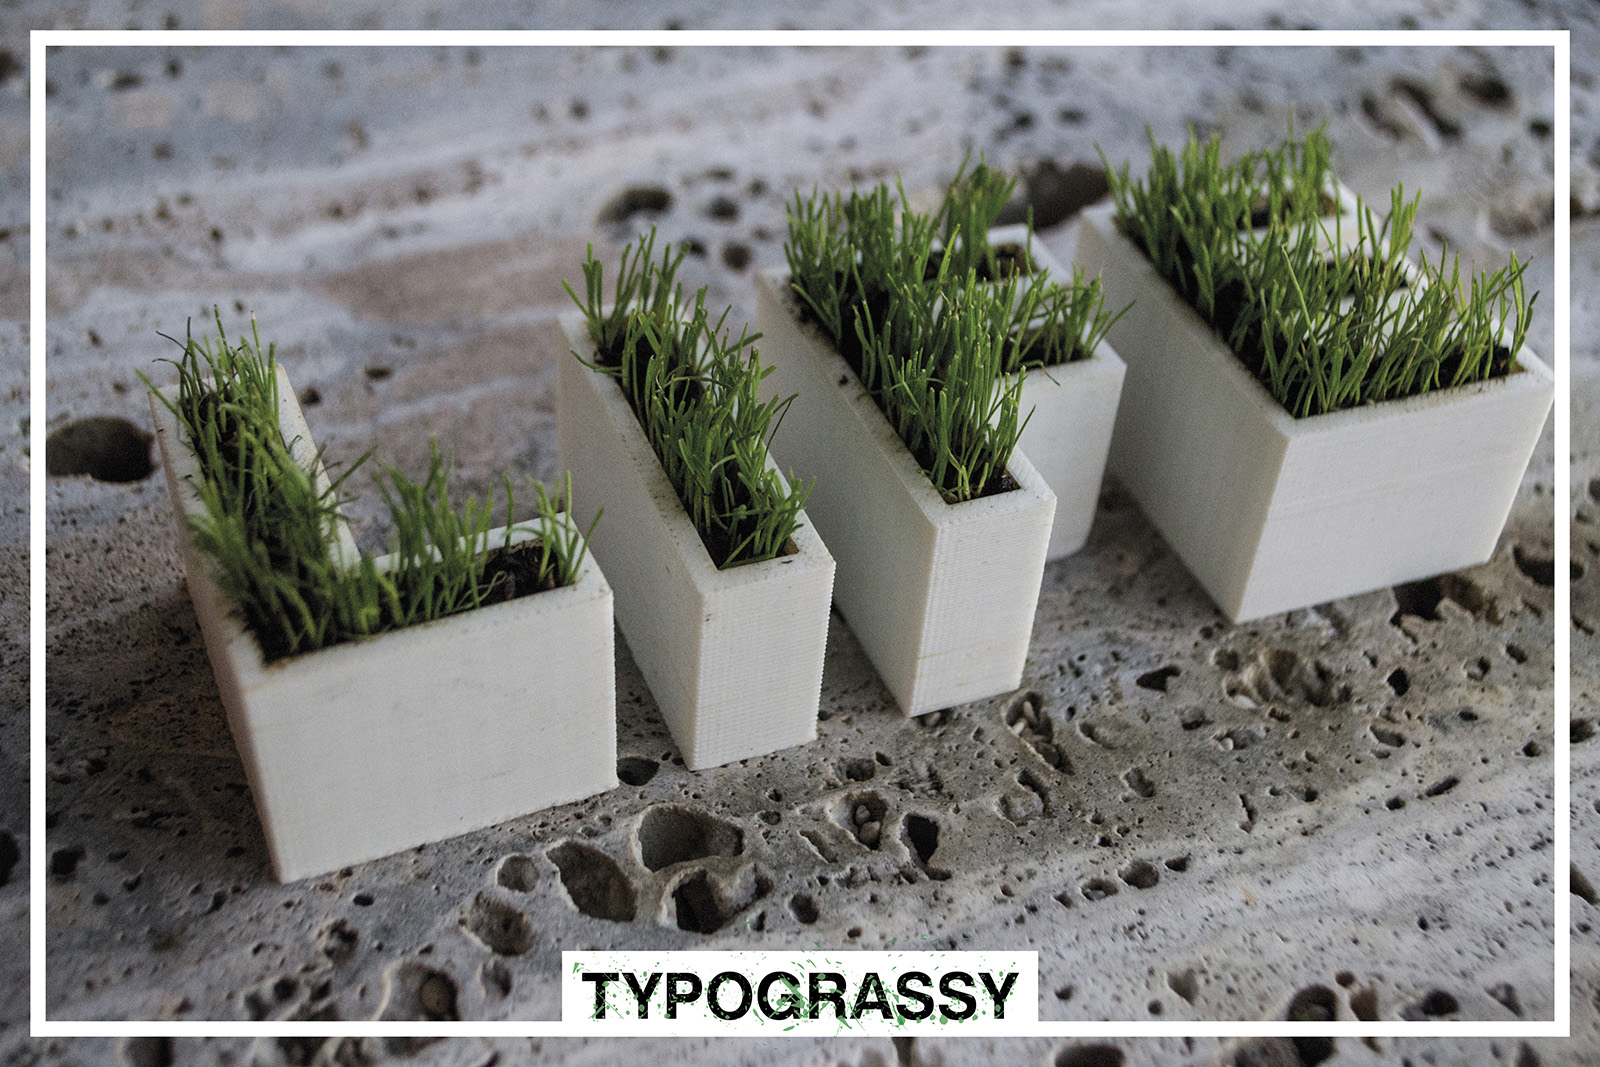 3D Printed letters and symbols with grass_Typograssy_3d product_yianart.com